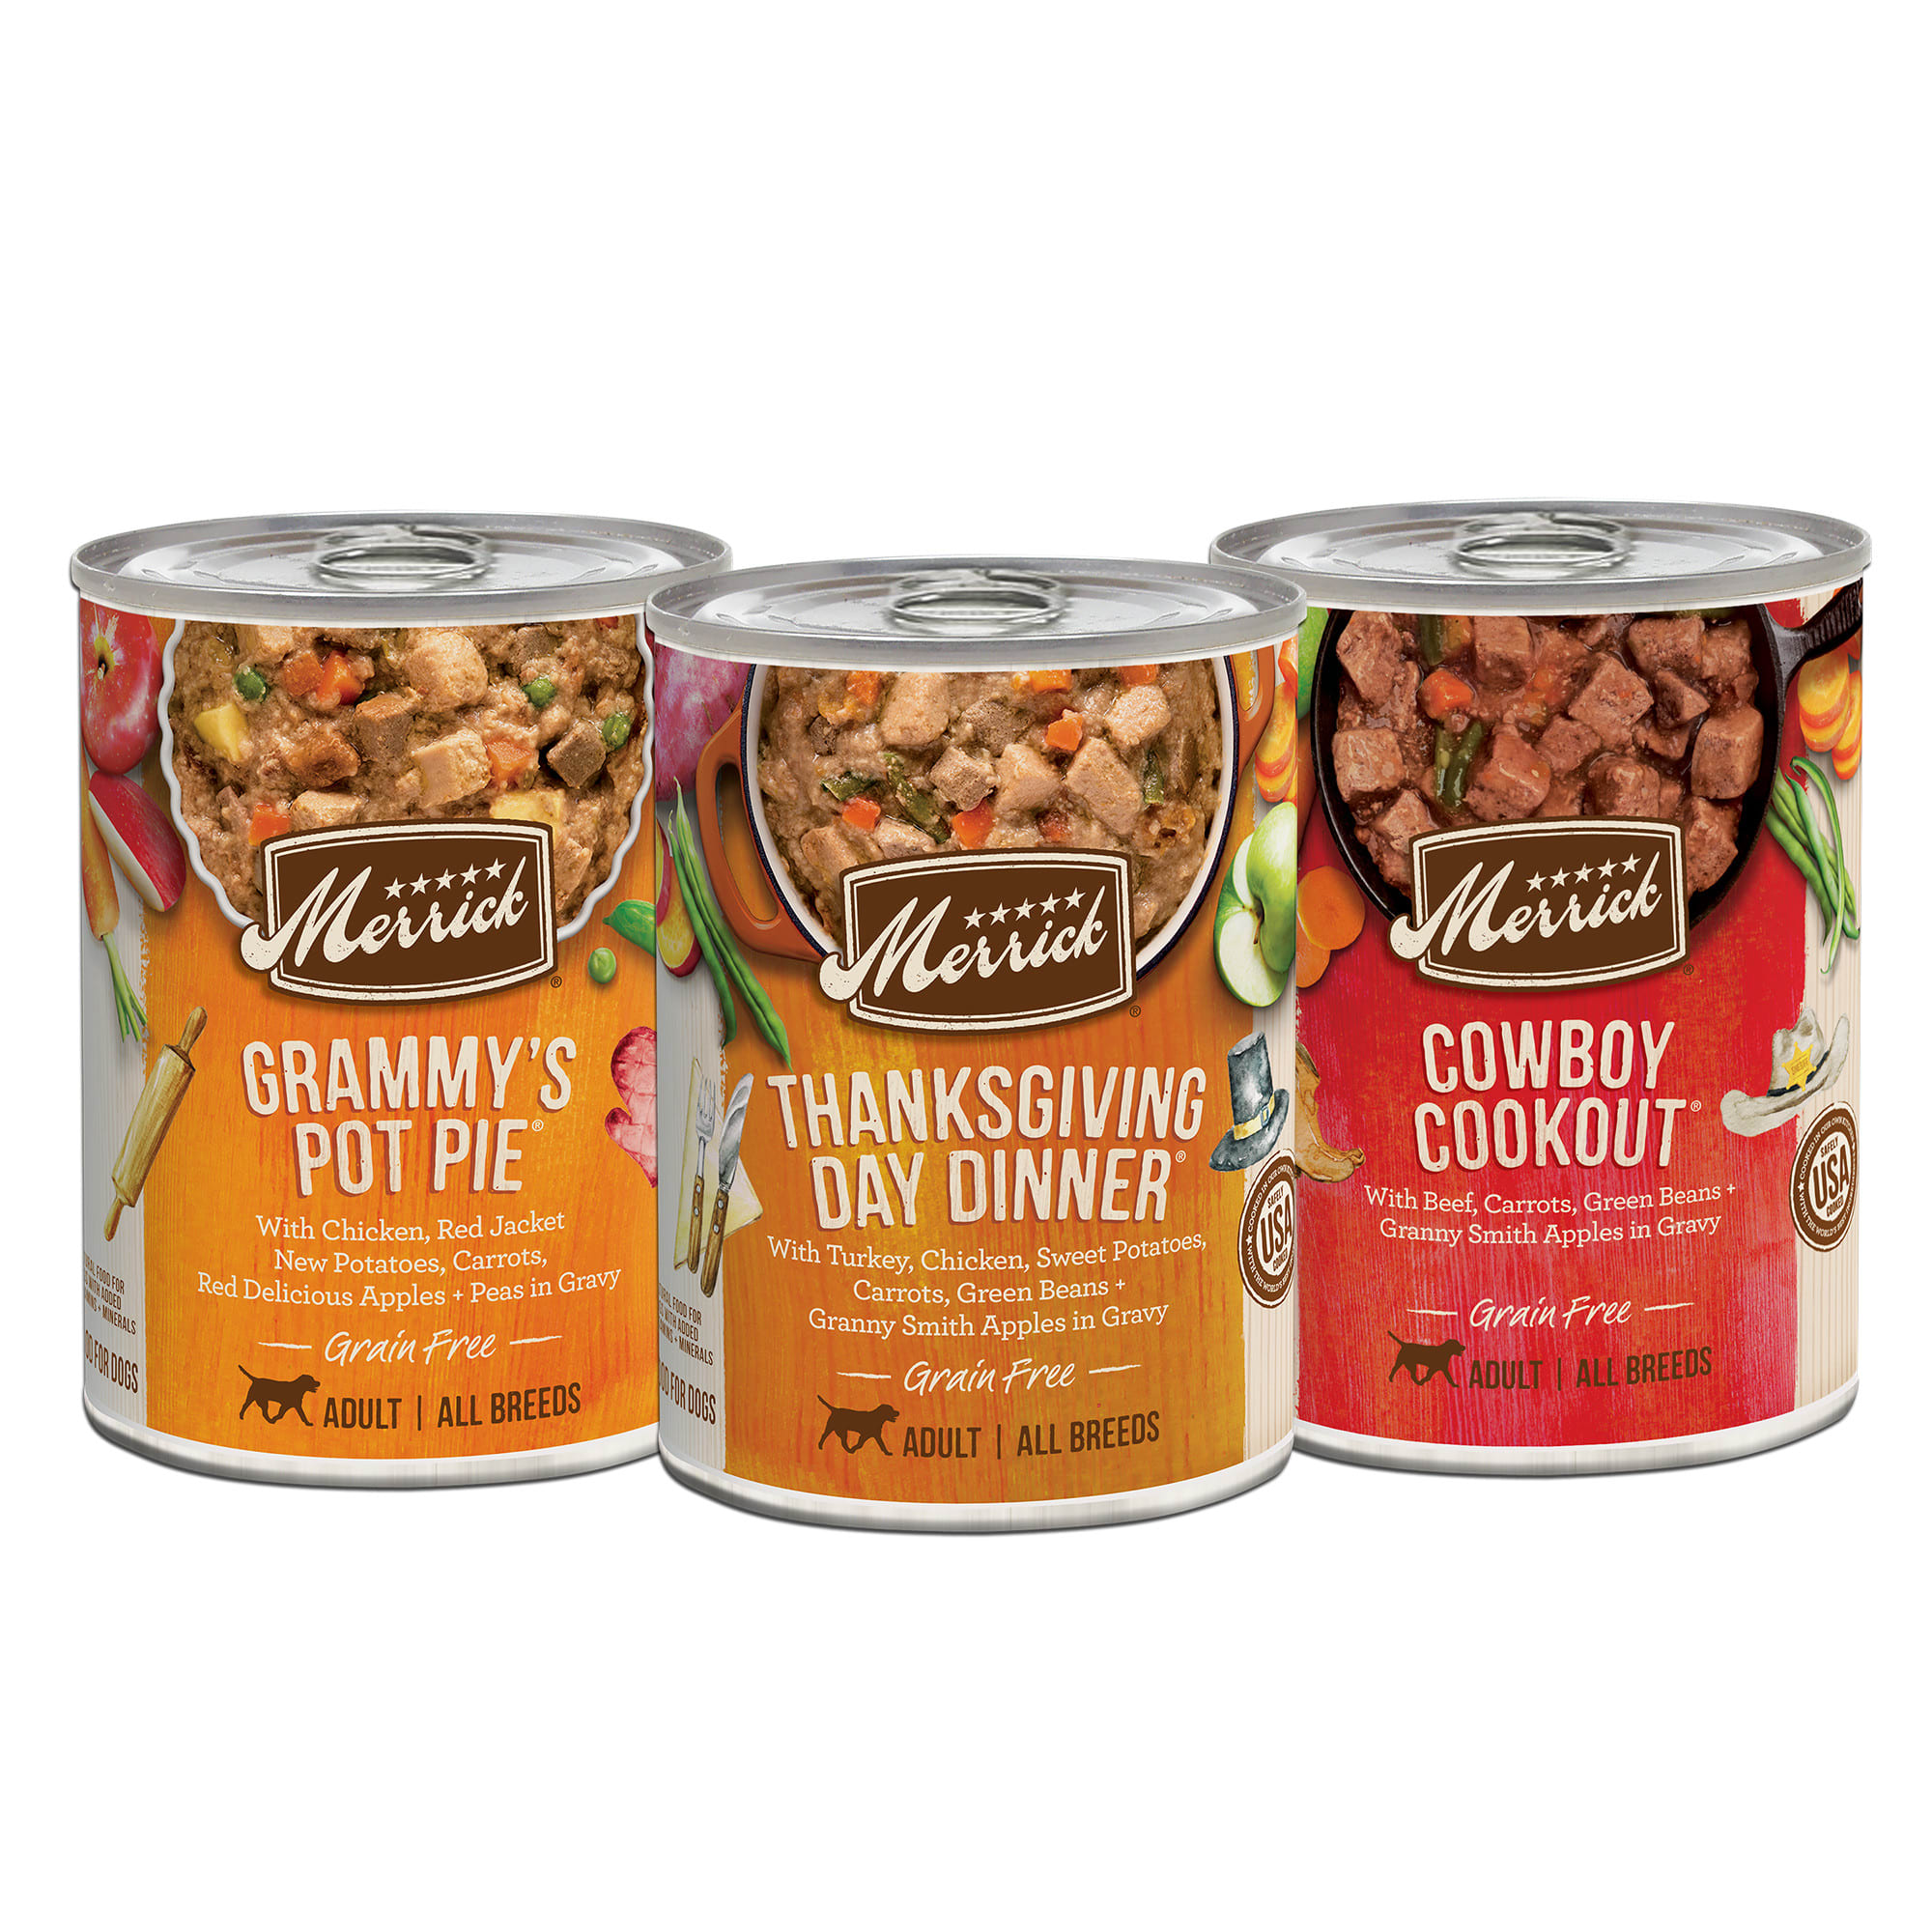 Merrick Grain Free Favorites Wet Dog Food Variety Pack features four cans of each of the three most popular Merrick wet dog food recipes, including Grammy\\\'s Pot Pie, Thanksgiving Day Dinner, and Cowboy Cookout. Every natural dog food recipe in this grain free canned dog food variety pack starts with deboned beef, chicken, or turkey as the first ingredient and is made with real whole foods like potatoes, carrots, and apples. This grain free wet dog food with real meat is made without artificial colors, flavors, or preservatives. All Merrick dog food recipes are crafted in Merrick\\\'s own kitchen in Hereford, TX and cooked in the USA.